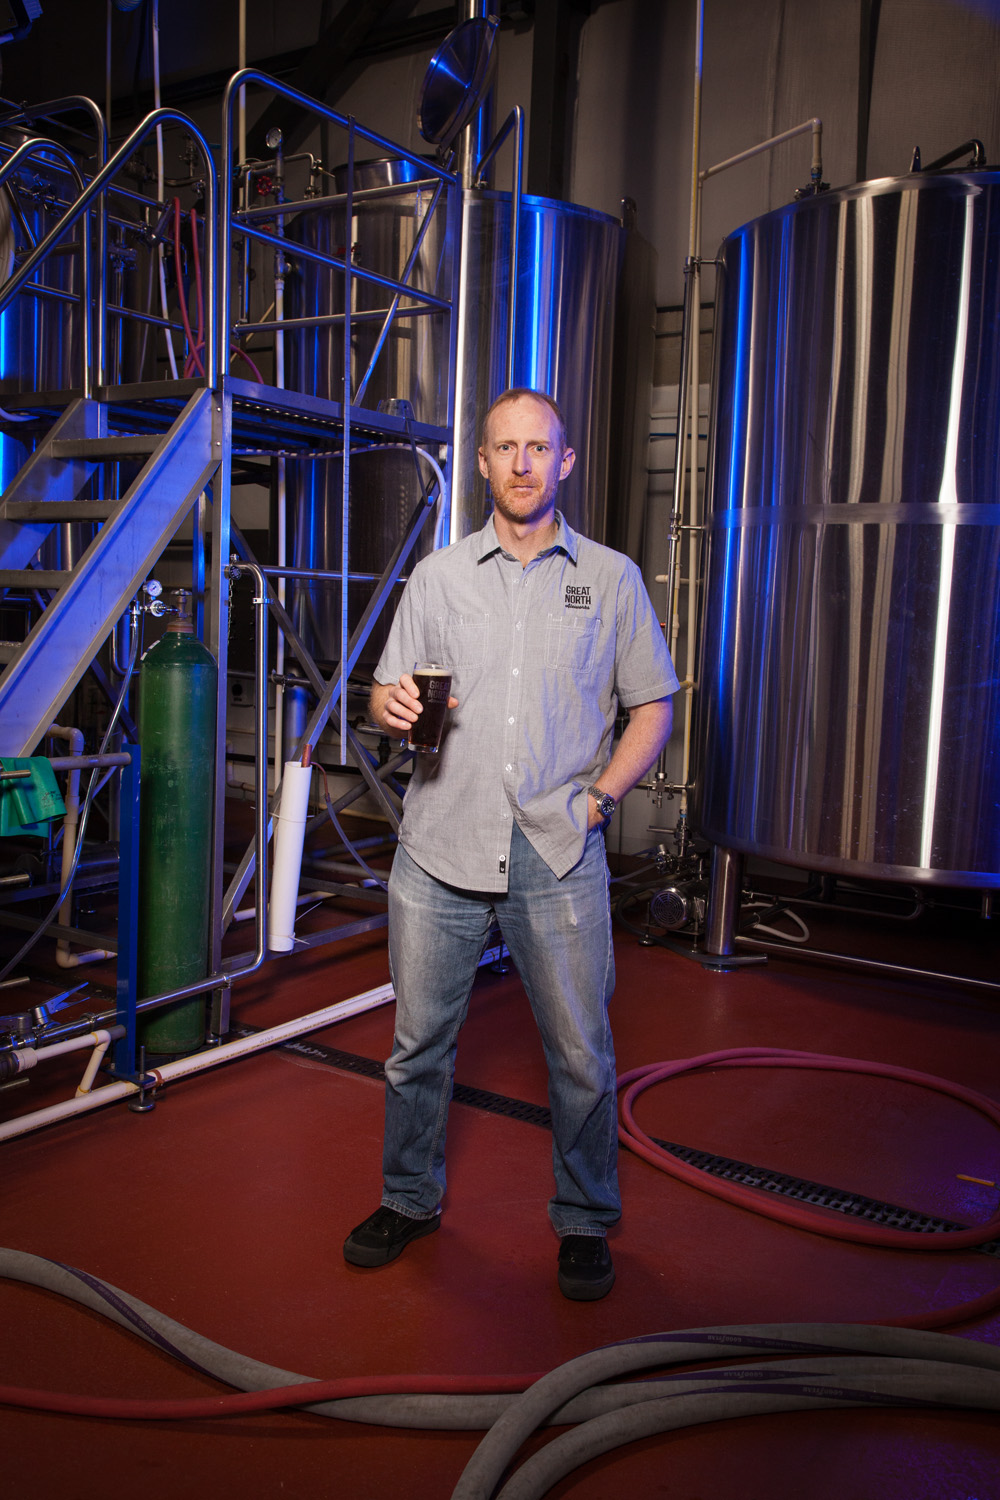 Rob North, Brewmaster Great North Aleworks Manchester, NH Established in 2015